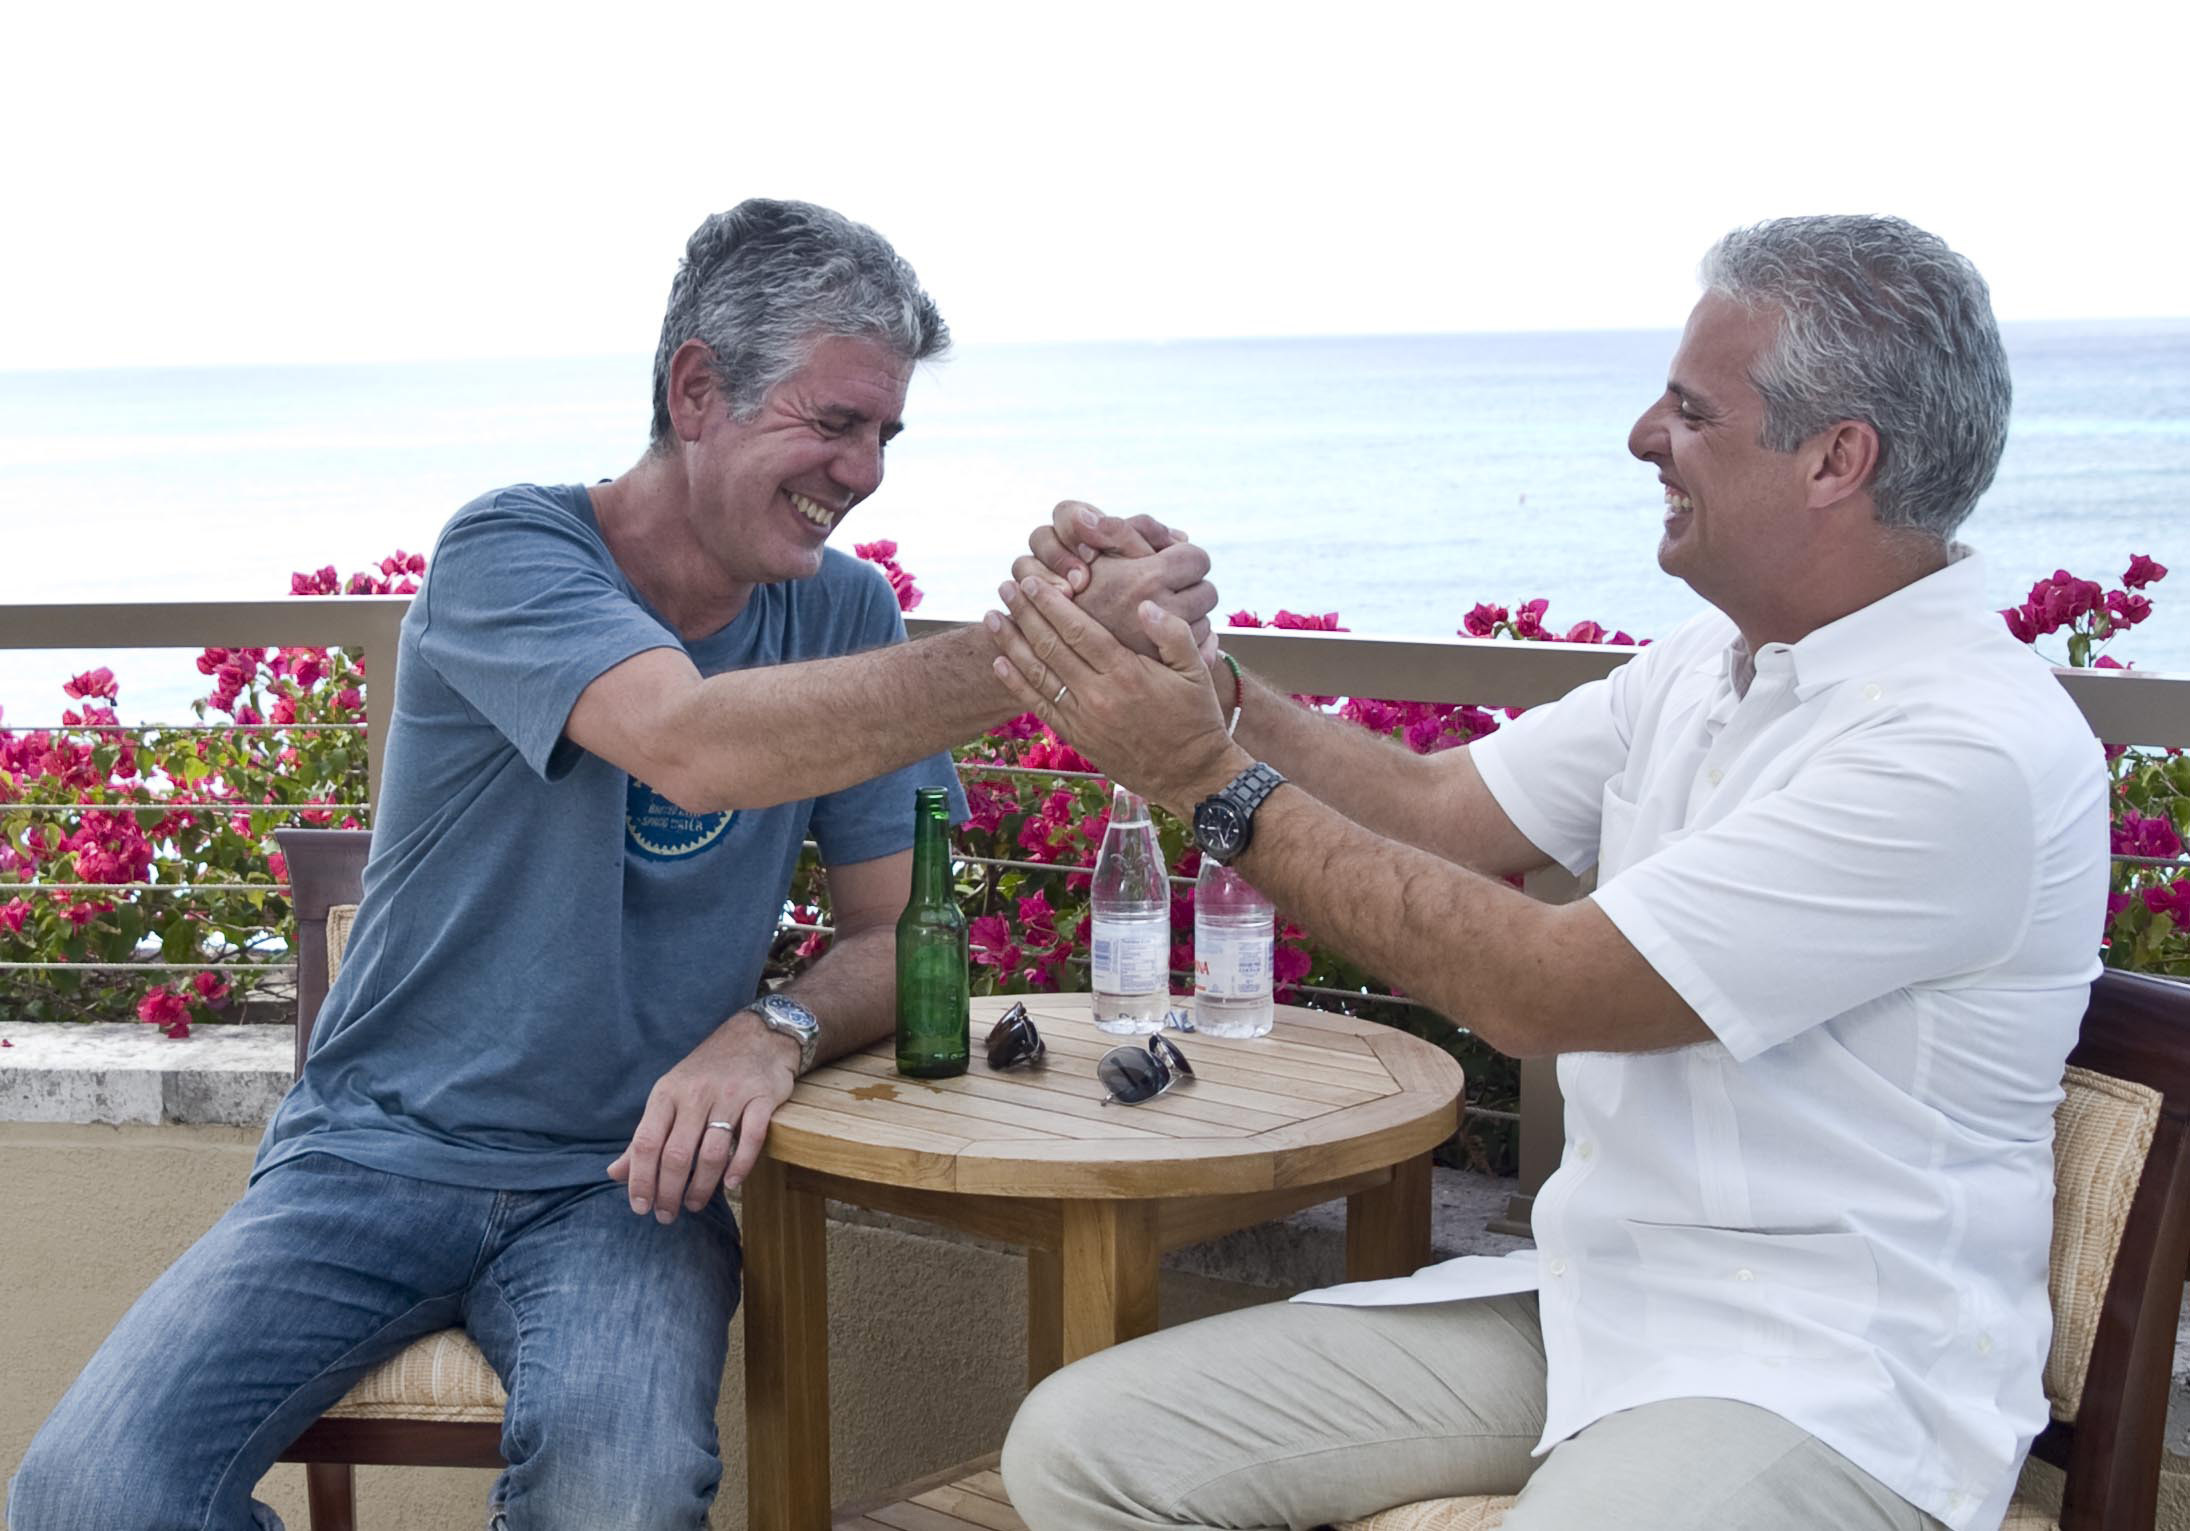 Anthony Bourdain and Eric Ripert (Photo: Business Wire)